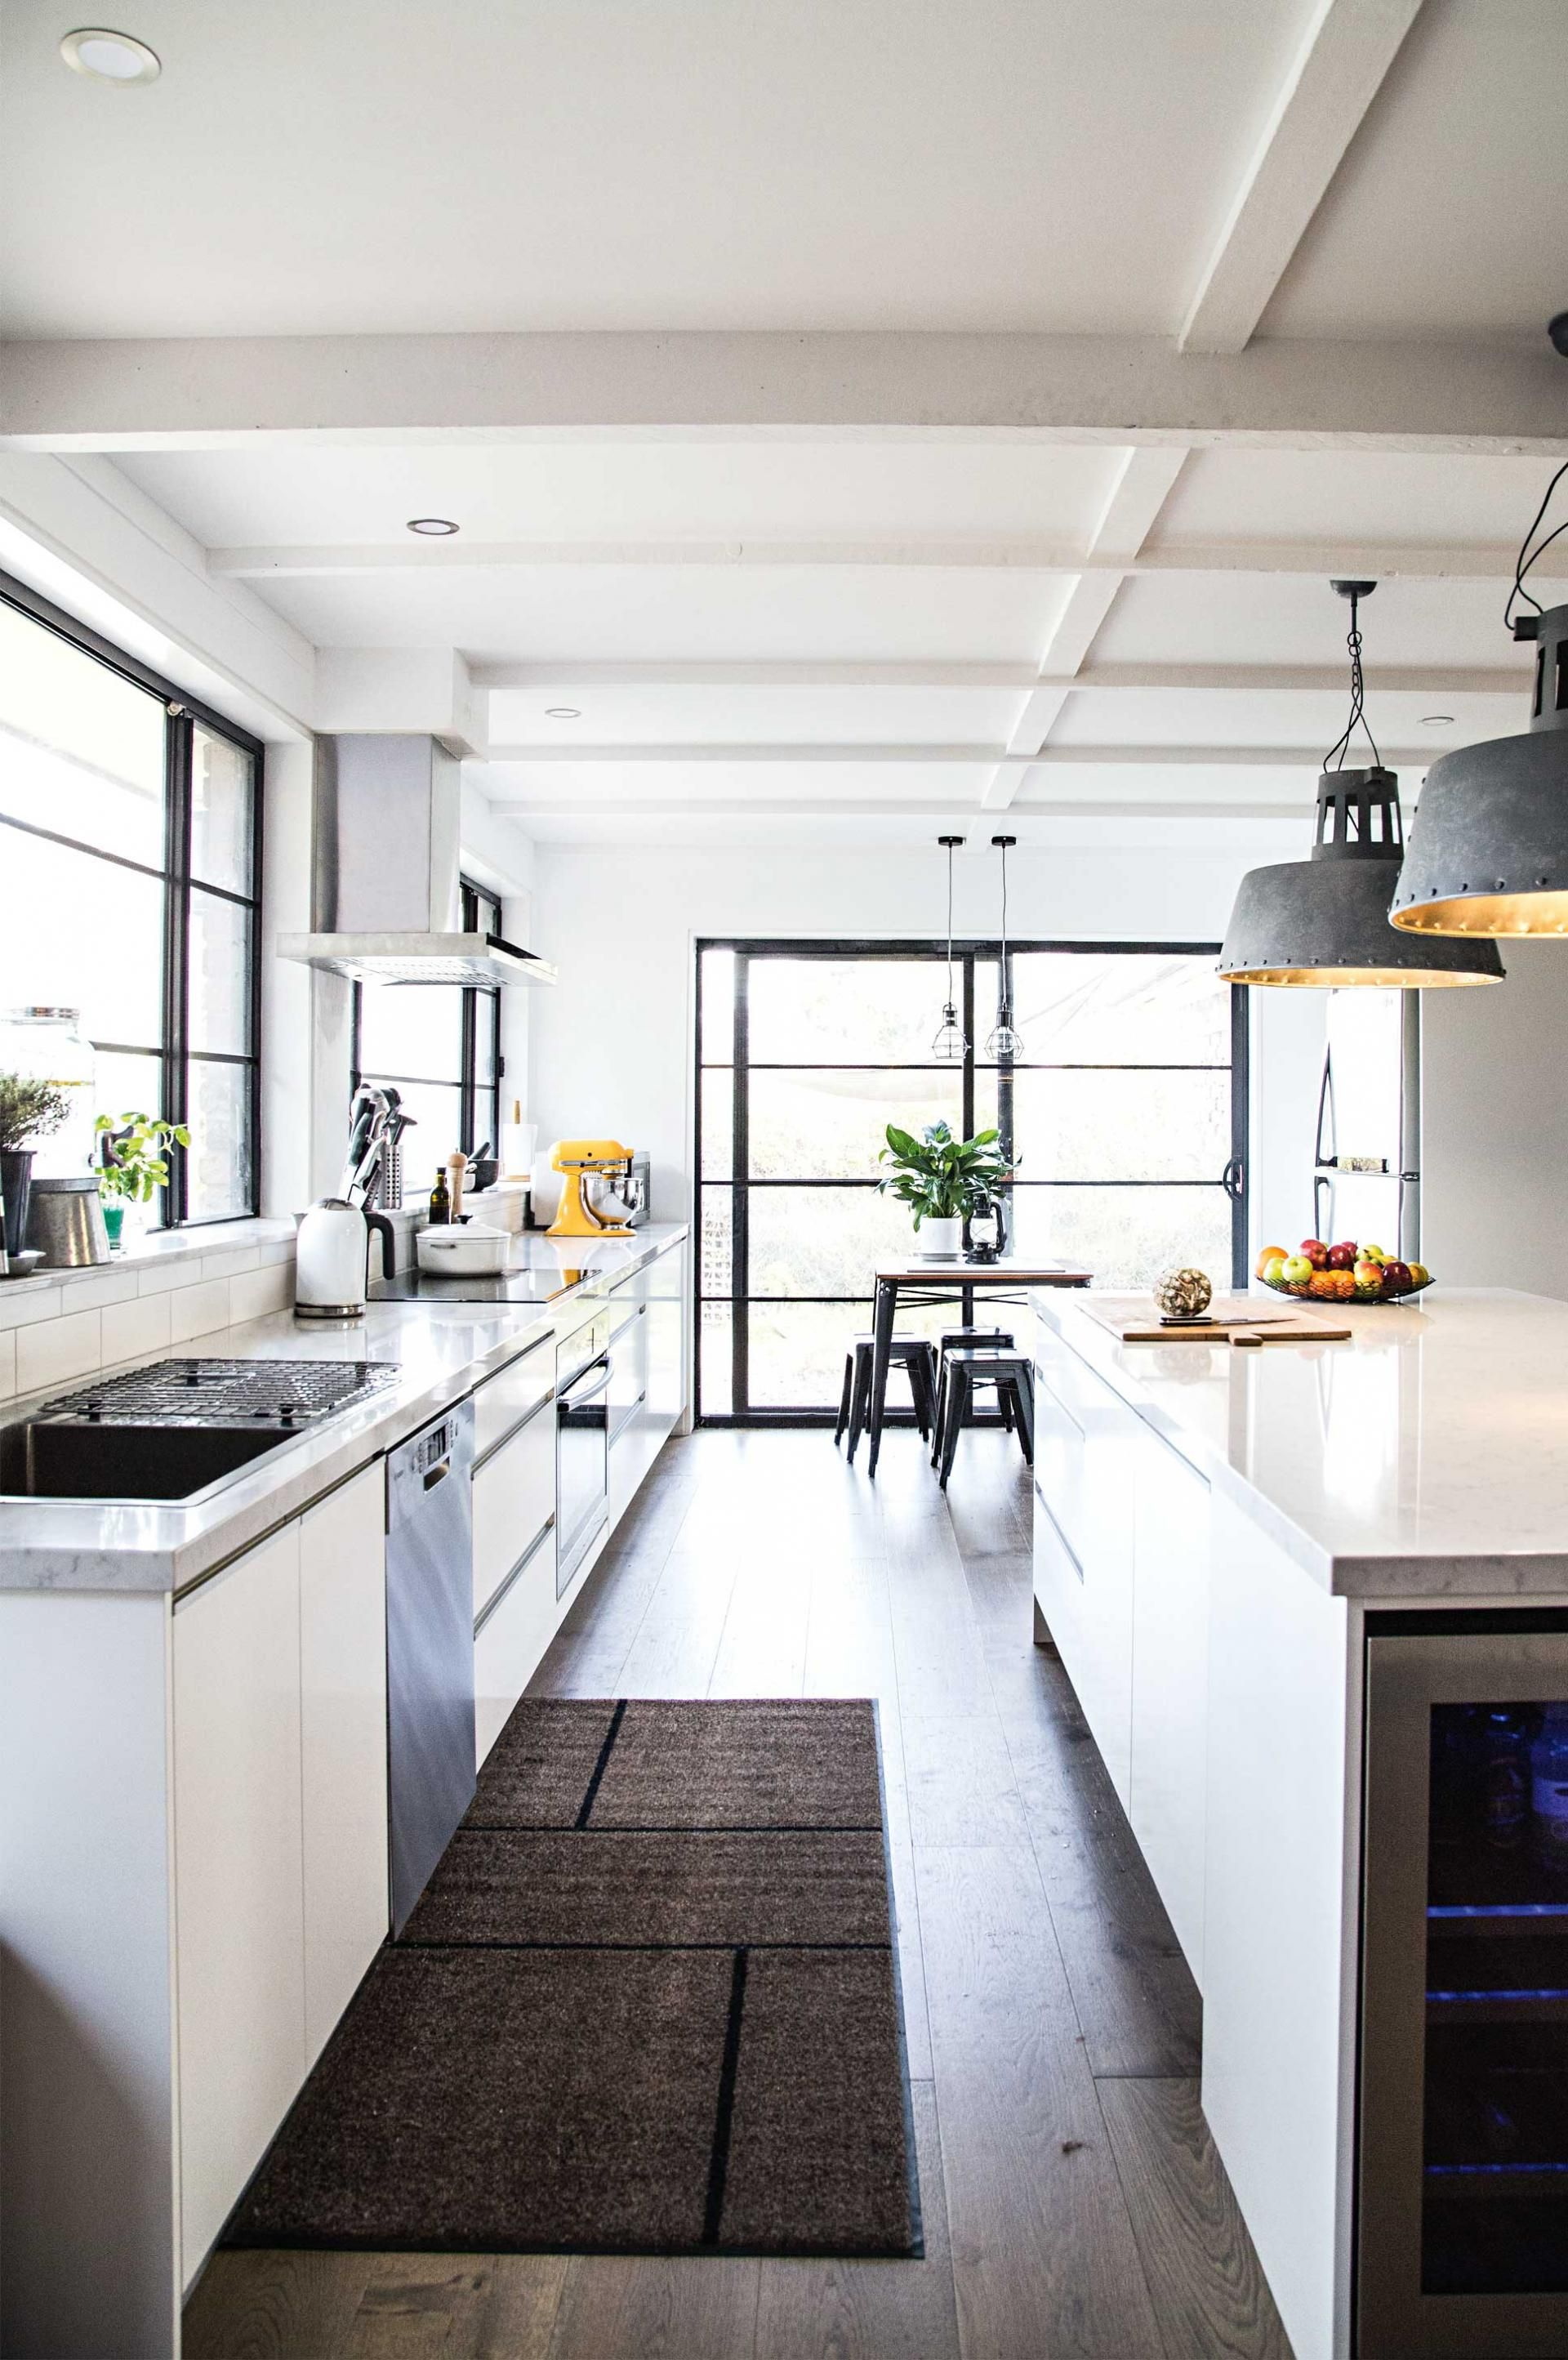 8 Industrial Chic Kitchen Ideas Kitchens Industrial Chic Kitchen